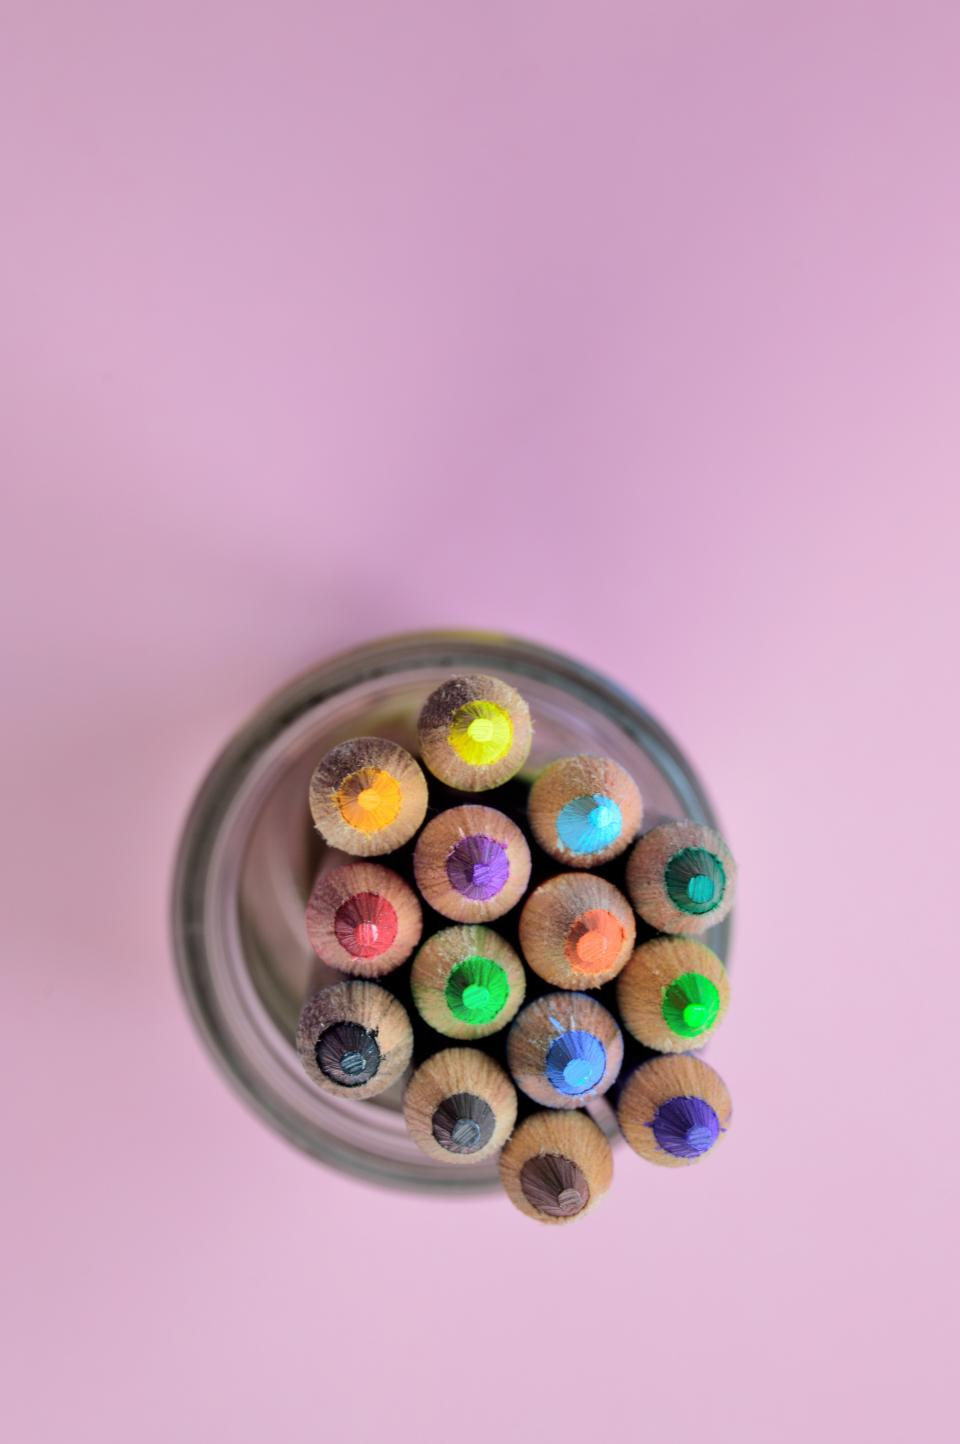 Free stock photo of pencil color